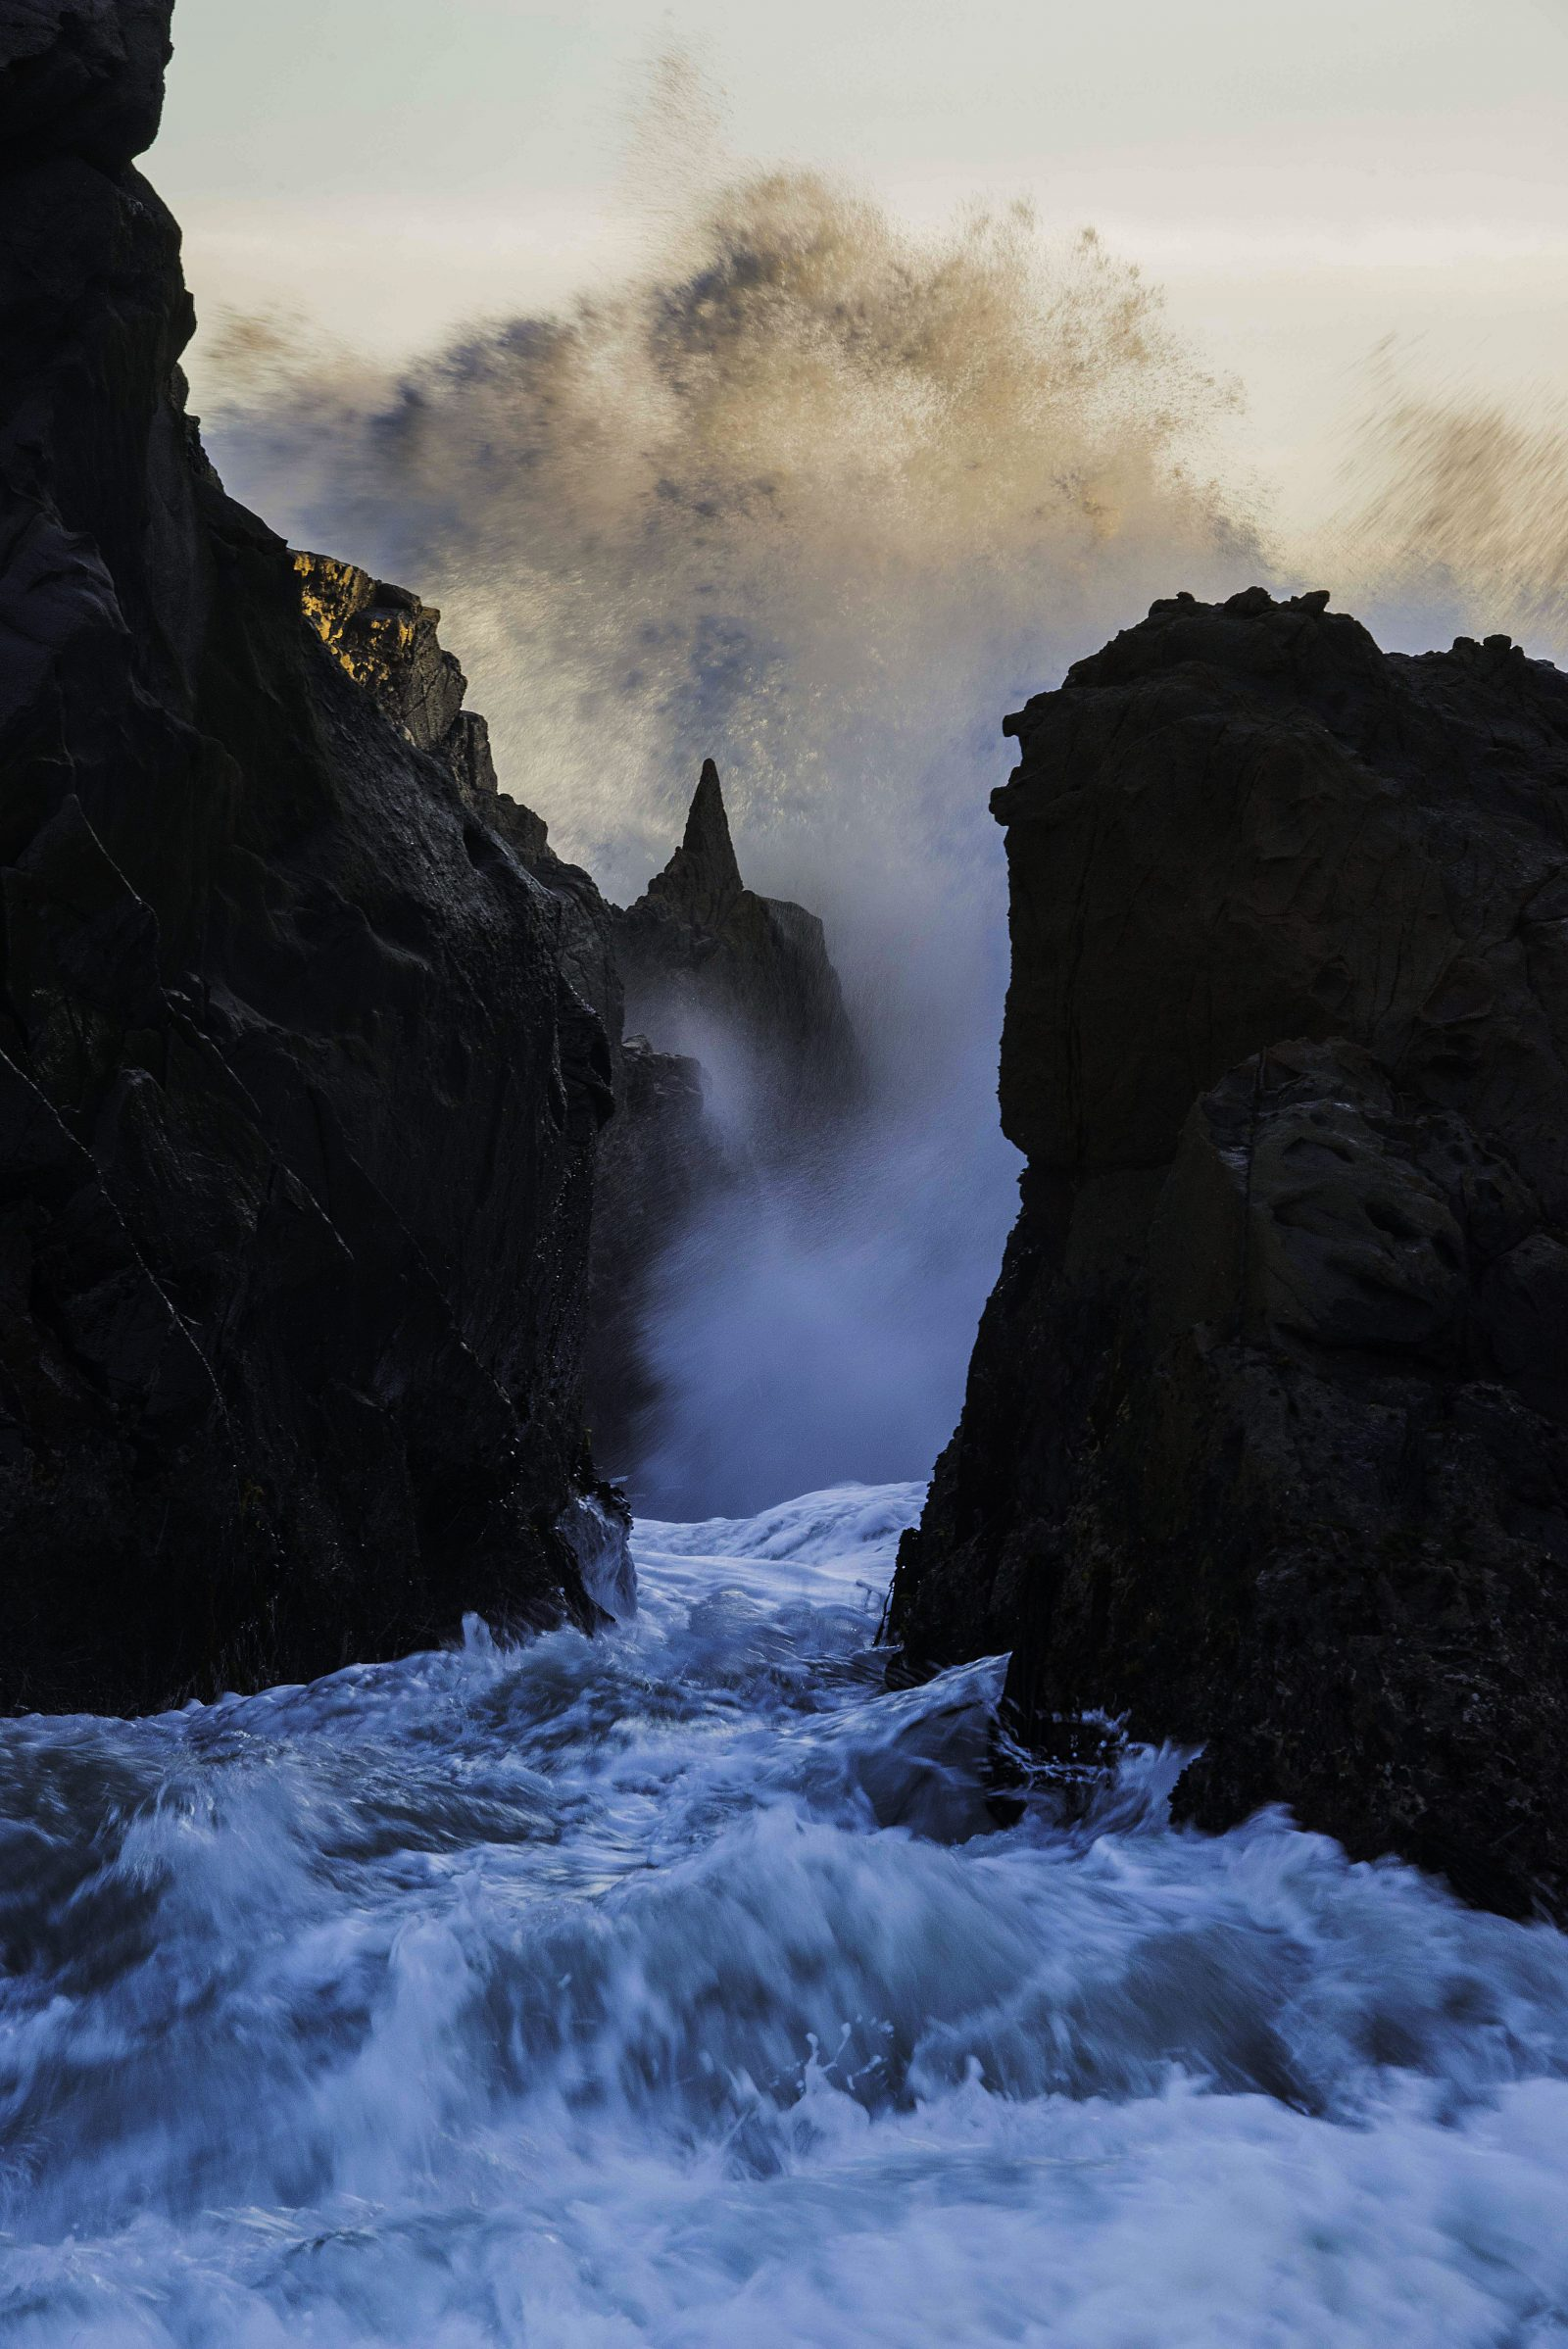 Wave Action at Pfeiffer Beach